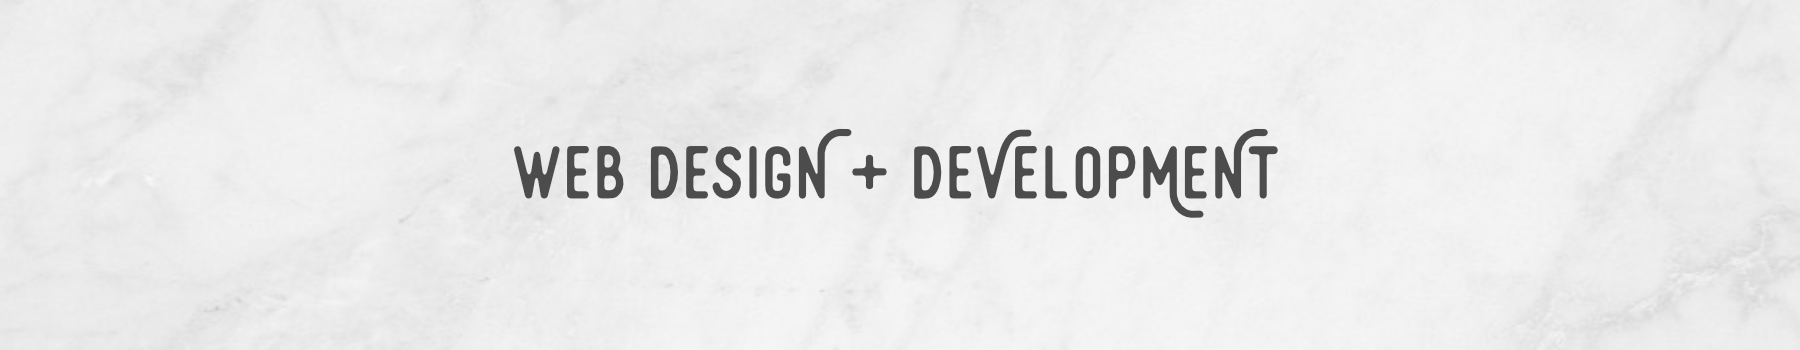 Web Designa and Development